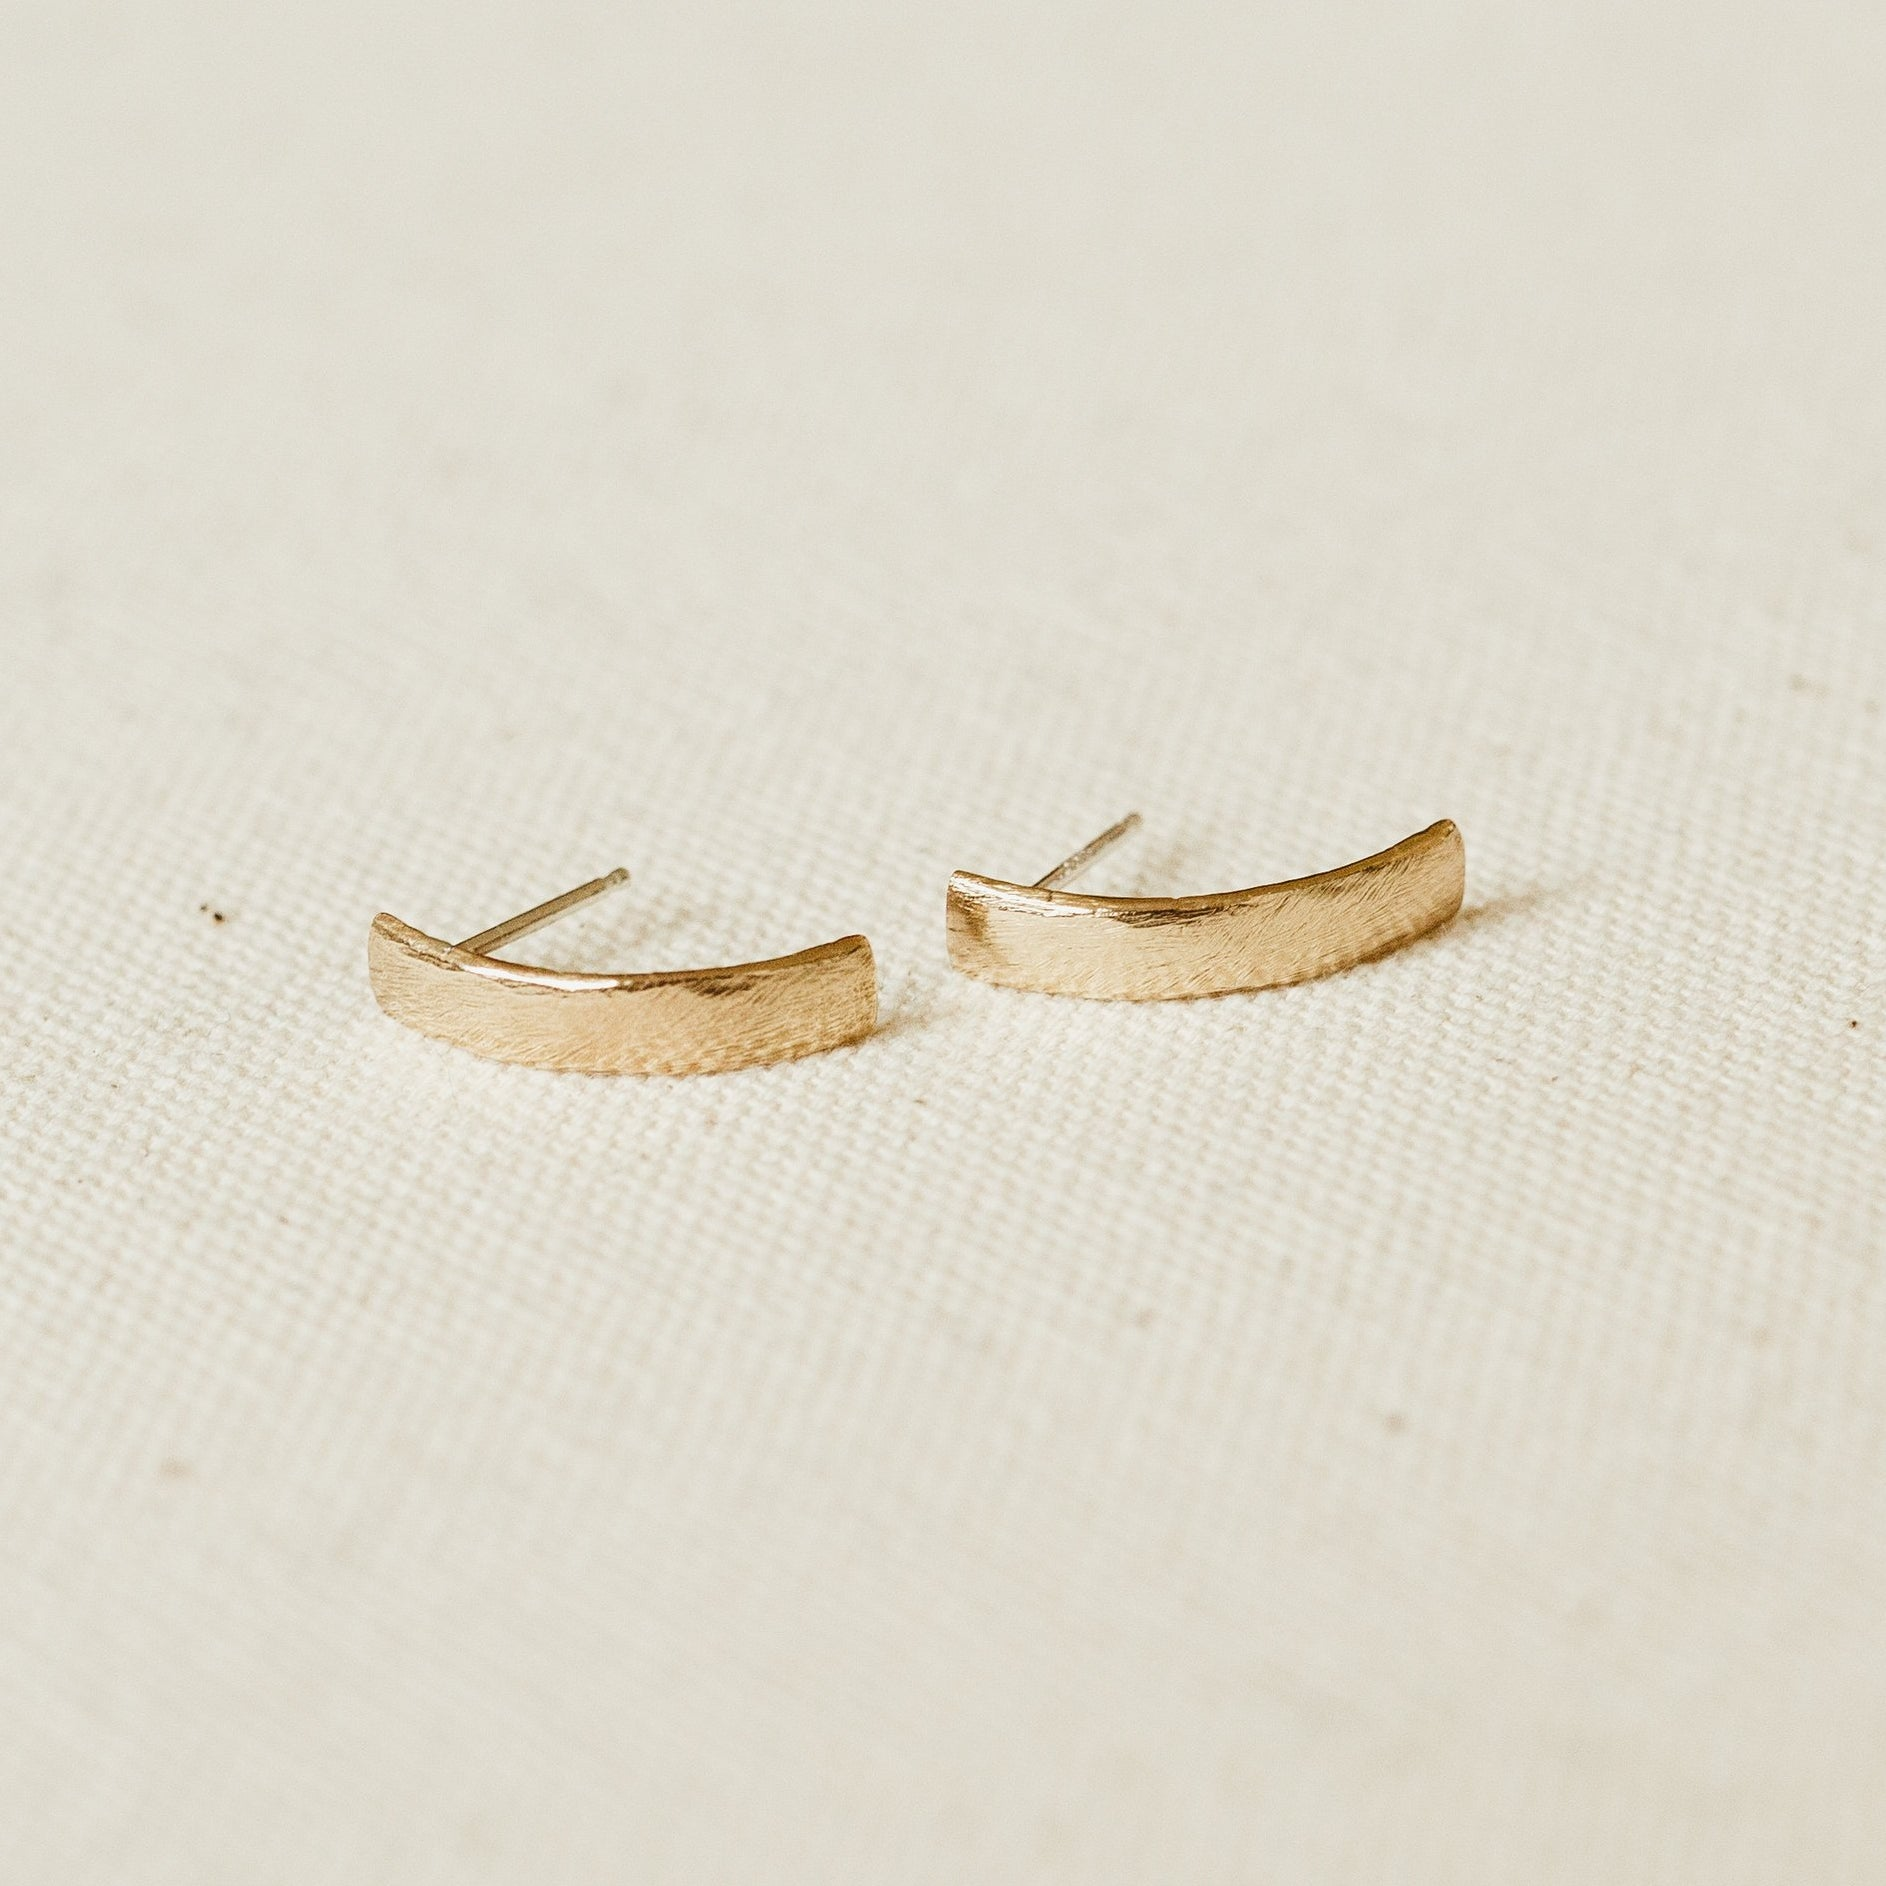 KIKI KOYOTE INERTIA EARRINGS